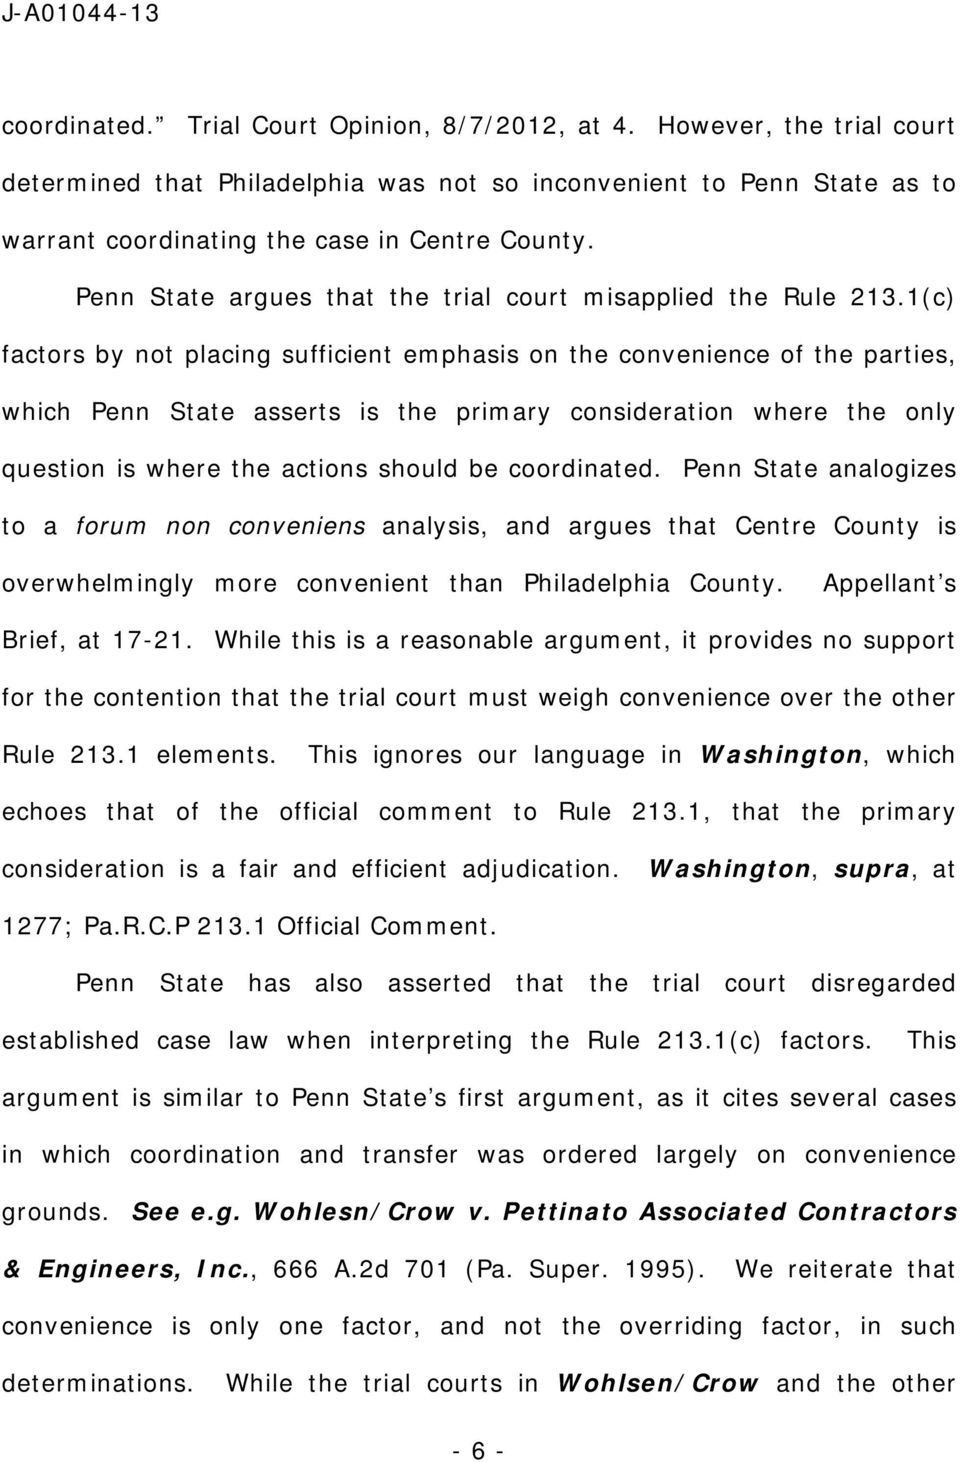 1(c) factors by not placing sufficient emphasis on the convenience of the parties, which Penn State asserts is the primary consideration where the only question is where the actions should be